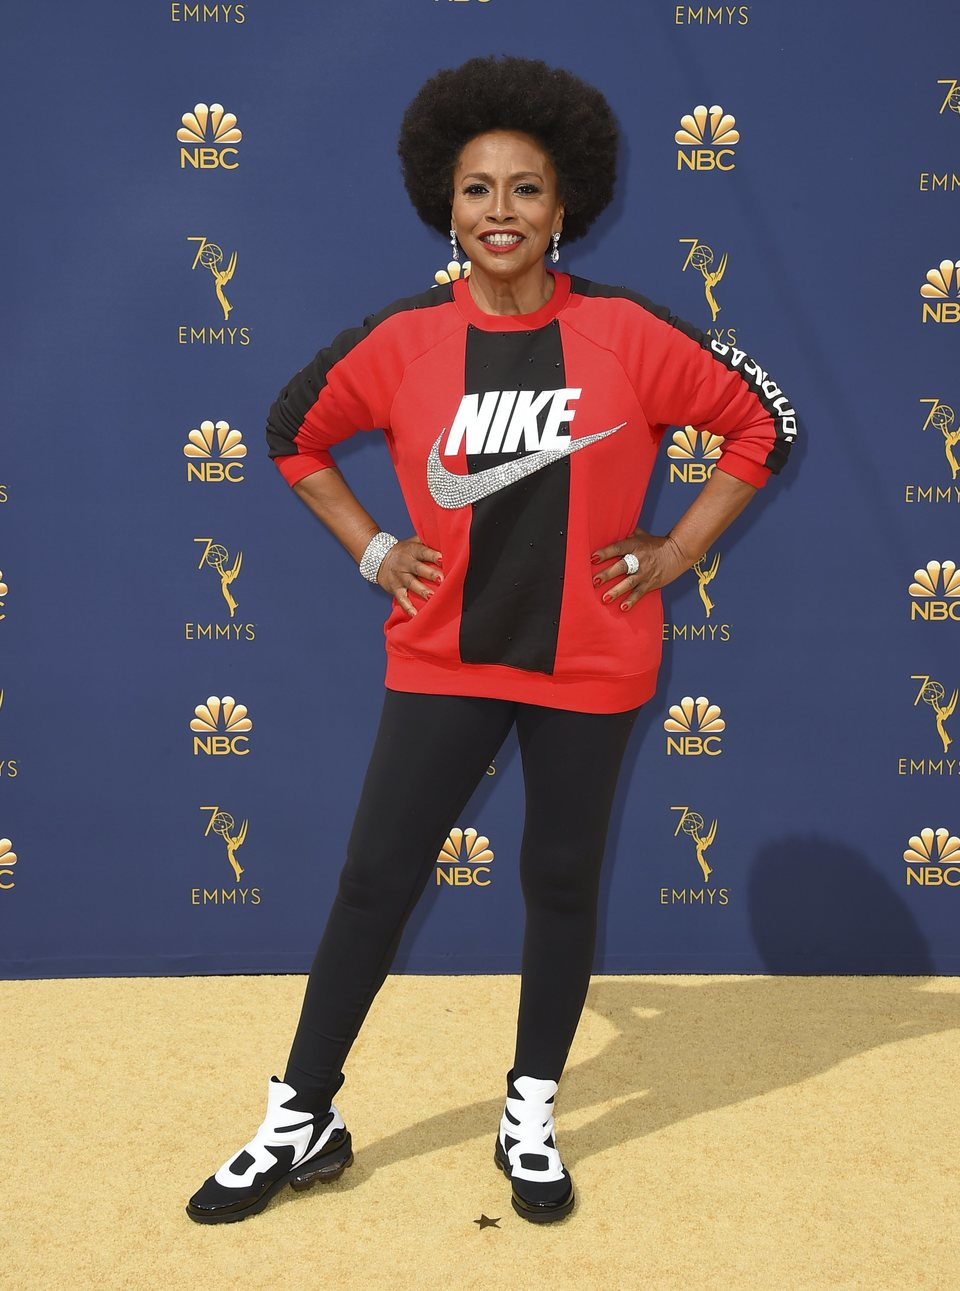 Jenifer Lewis on the red carpet at the Emmys 2018